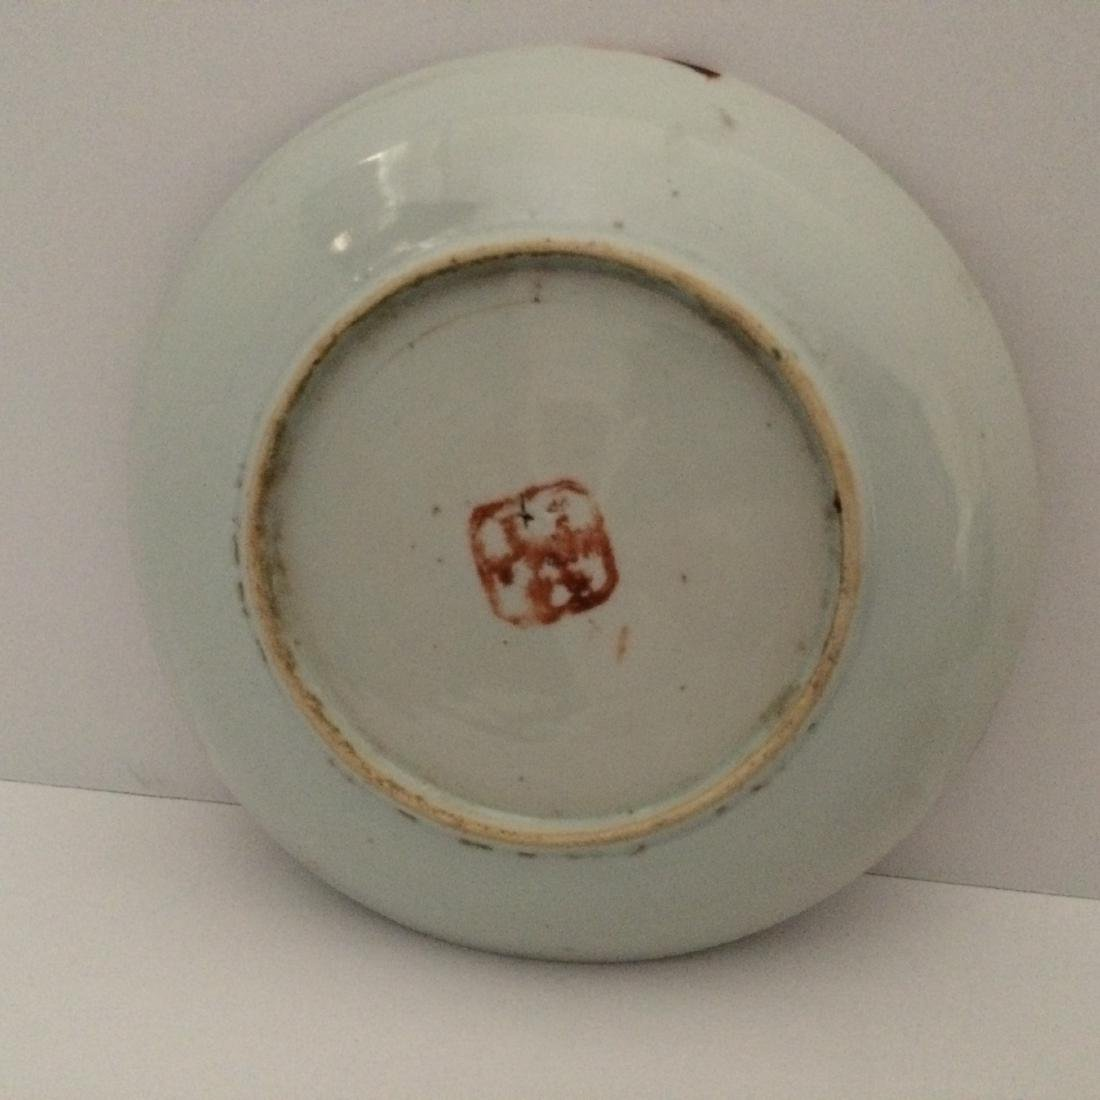 Chinese Chin Dynasty Porcelain Plates Butterfly Design - 4